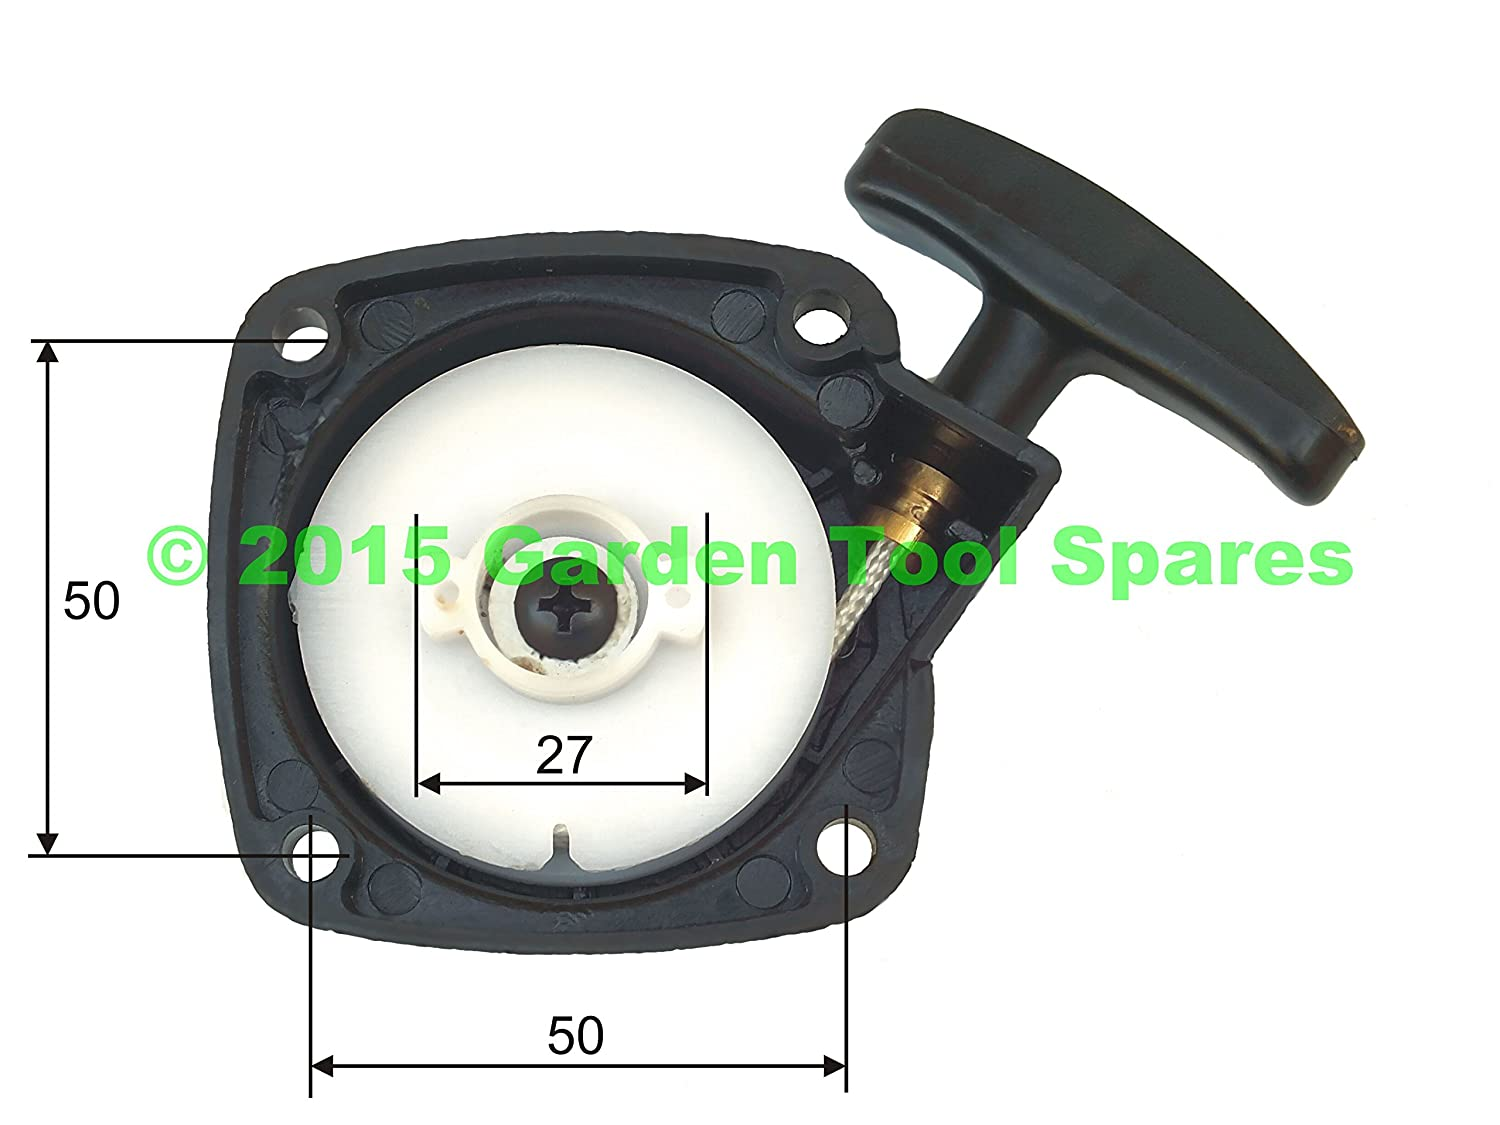 RECOIL PULL START STARTER ASSEMBLY TO FIT VARIOUS STRIMMER HEDGE TRIMMER BRUSH CUTTER Garden Tool Spares